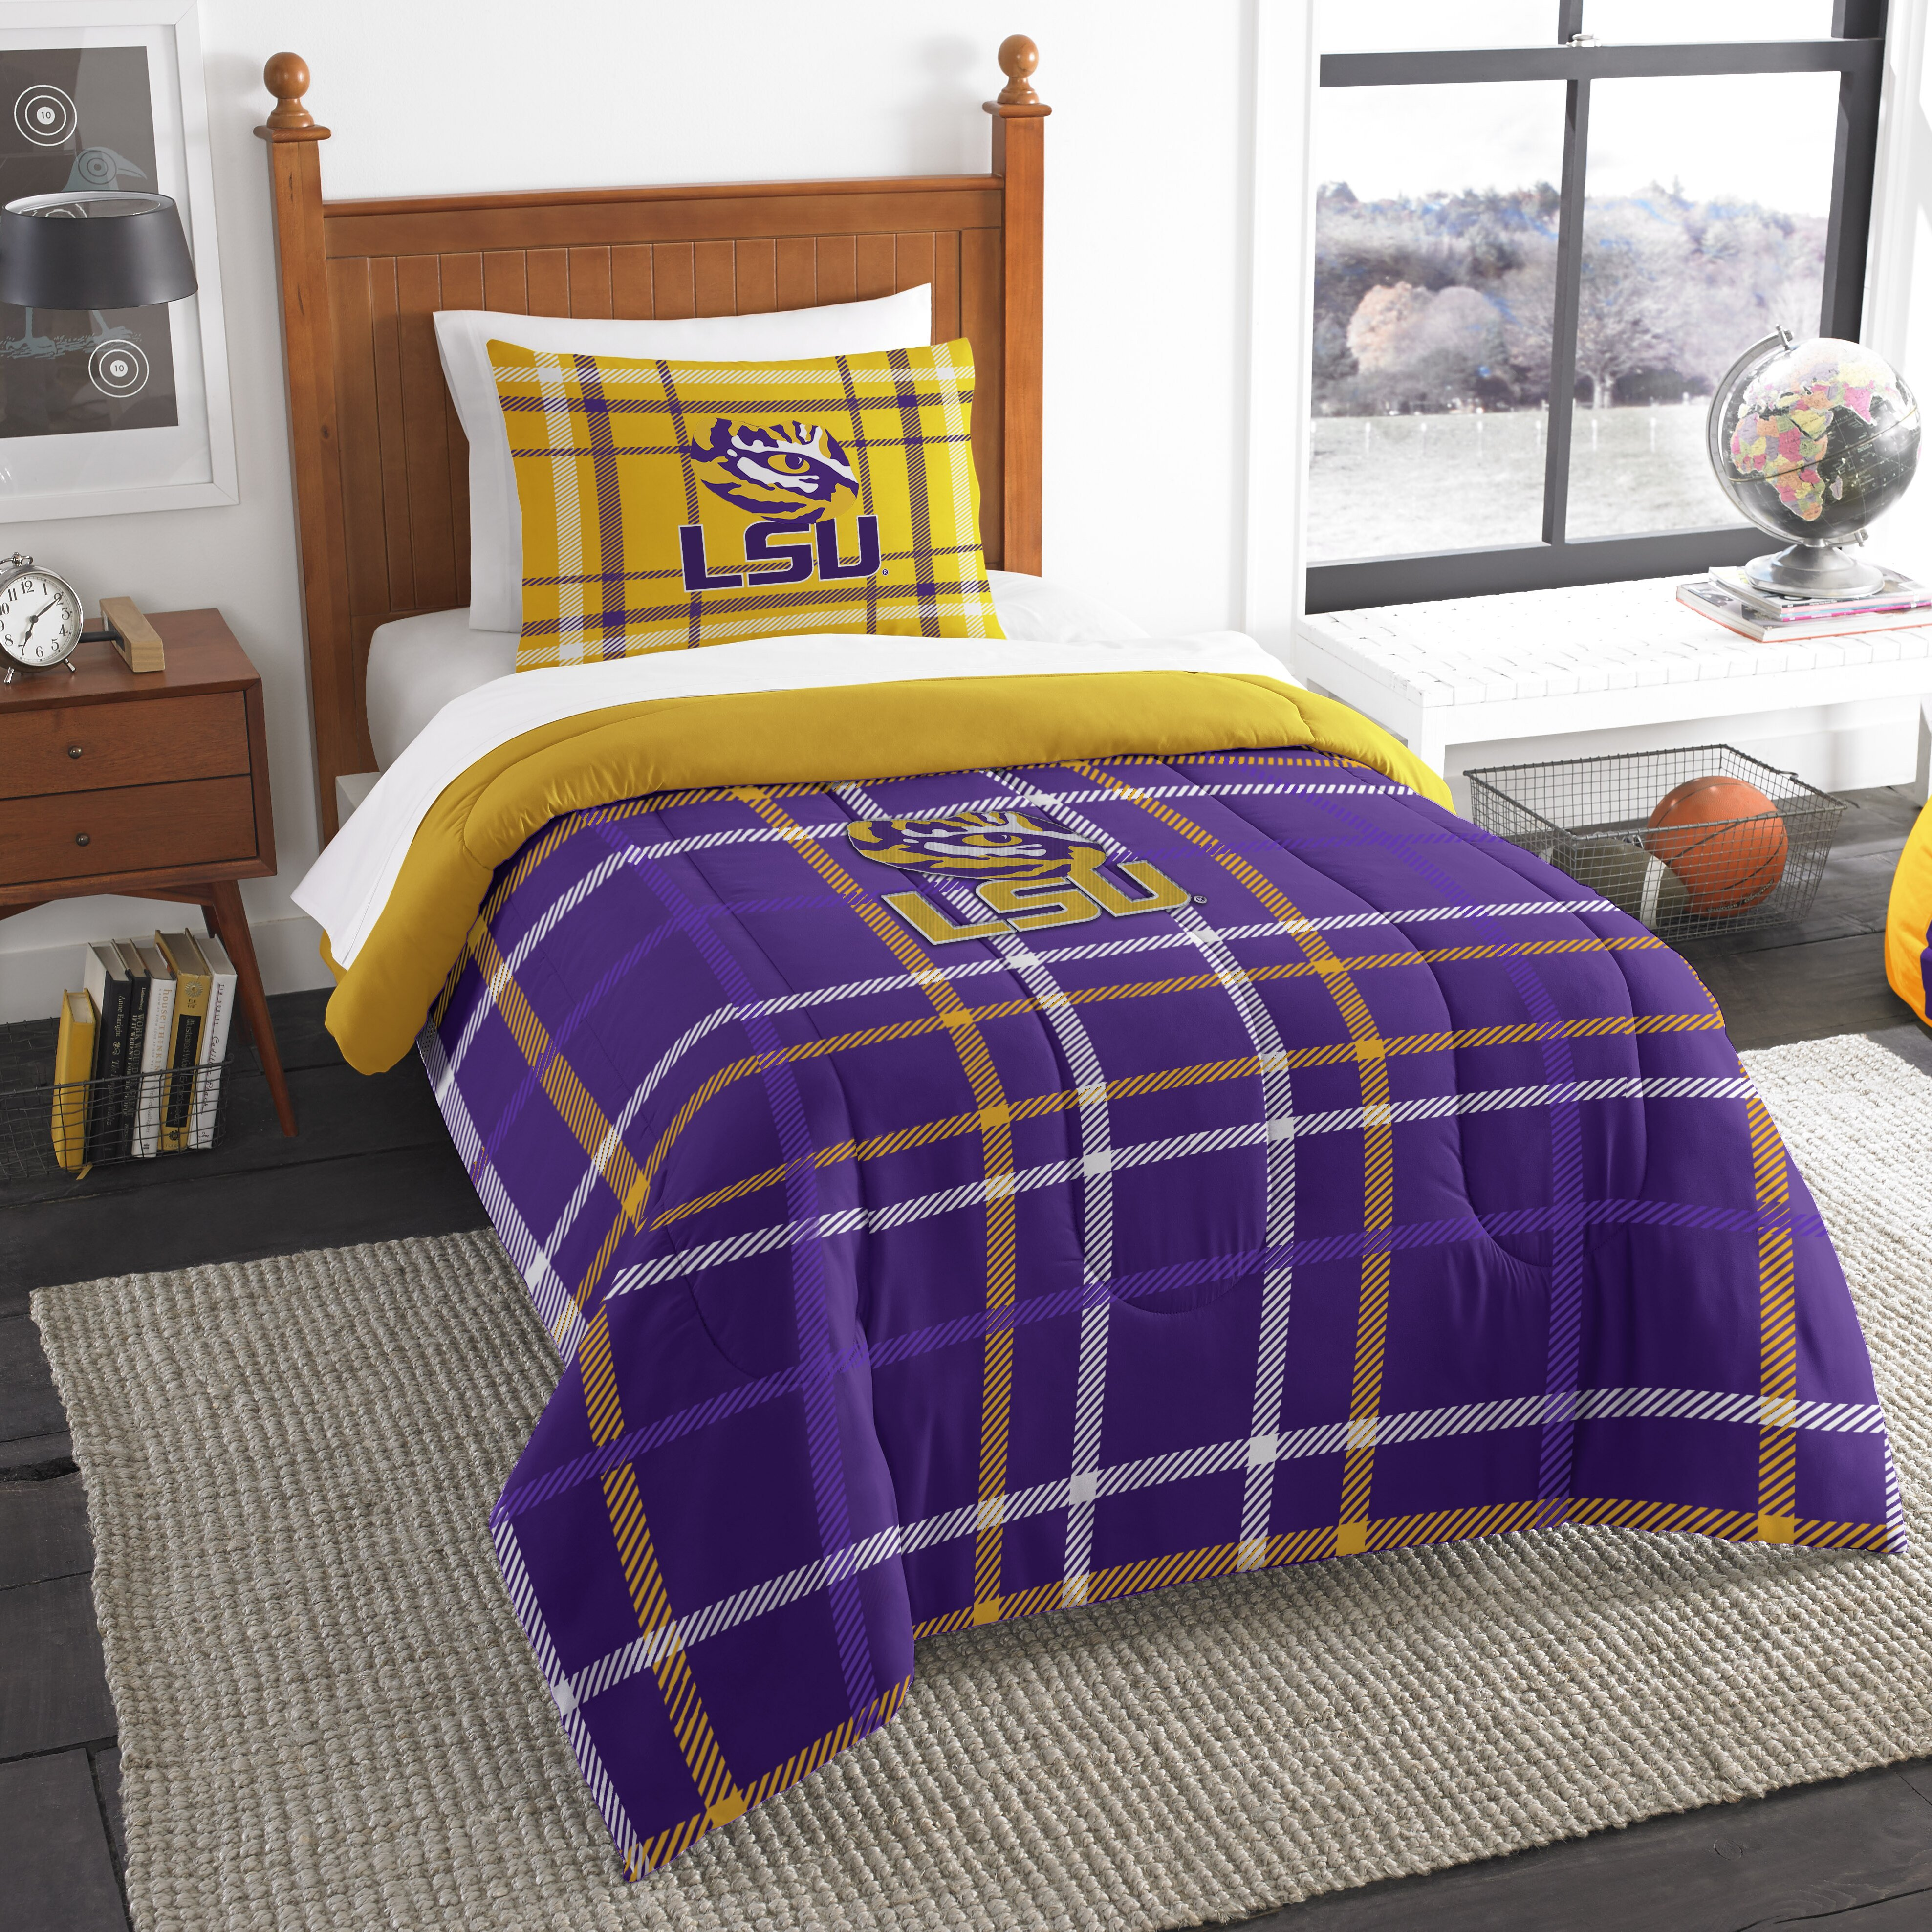 Lsu Bed Sheets